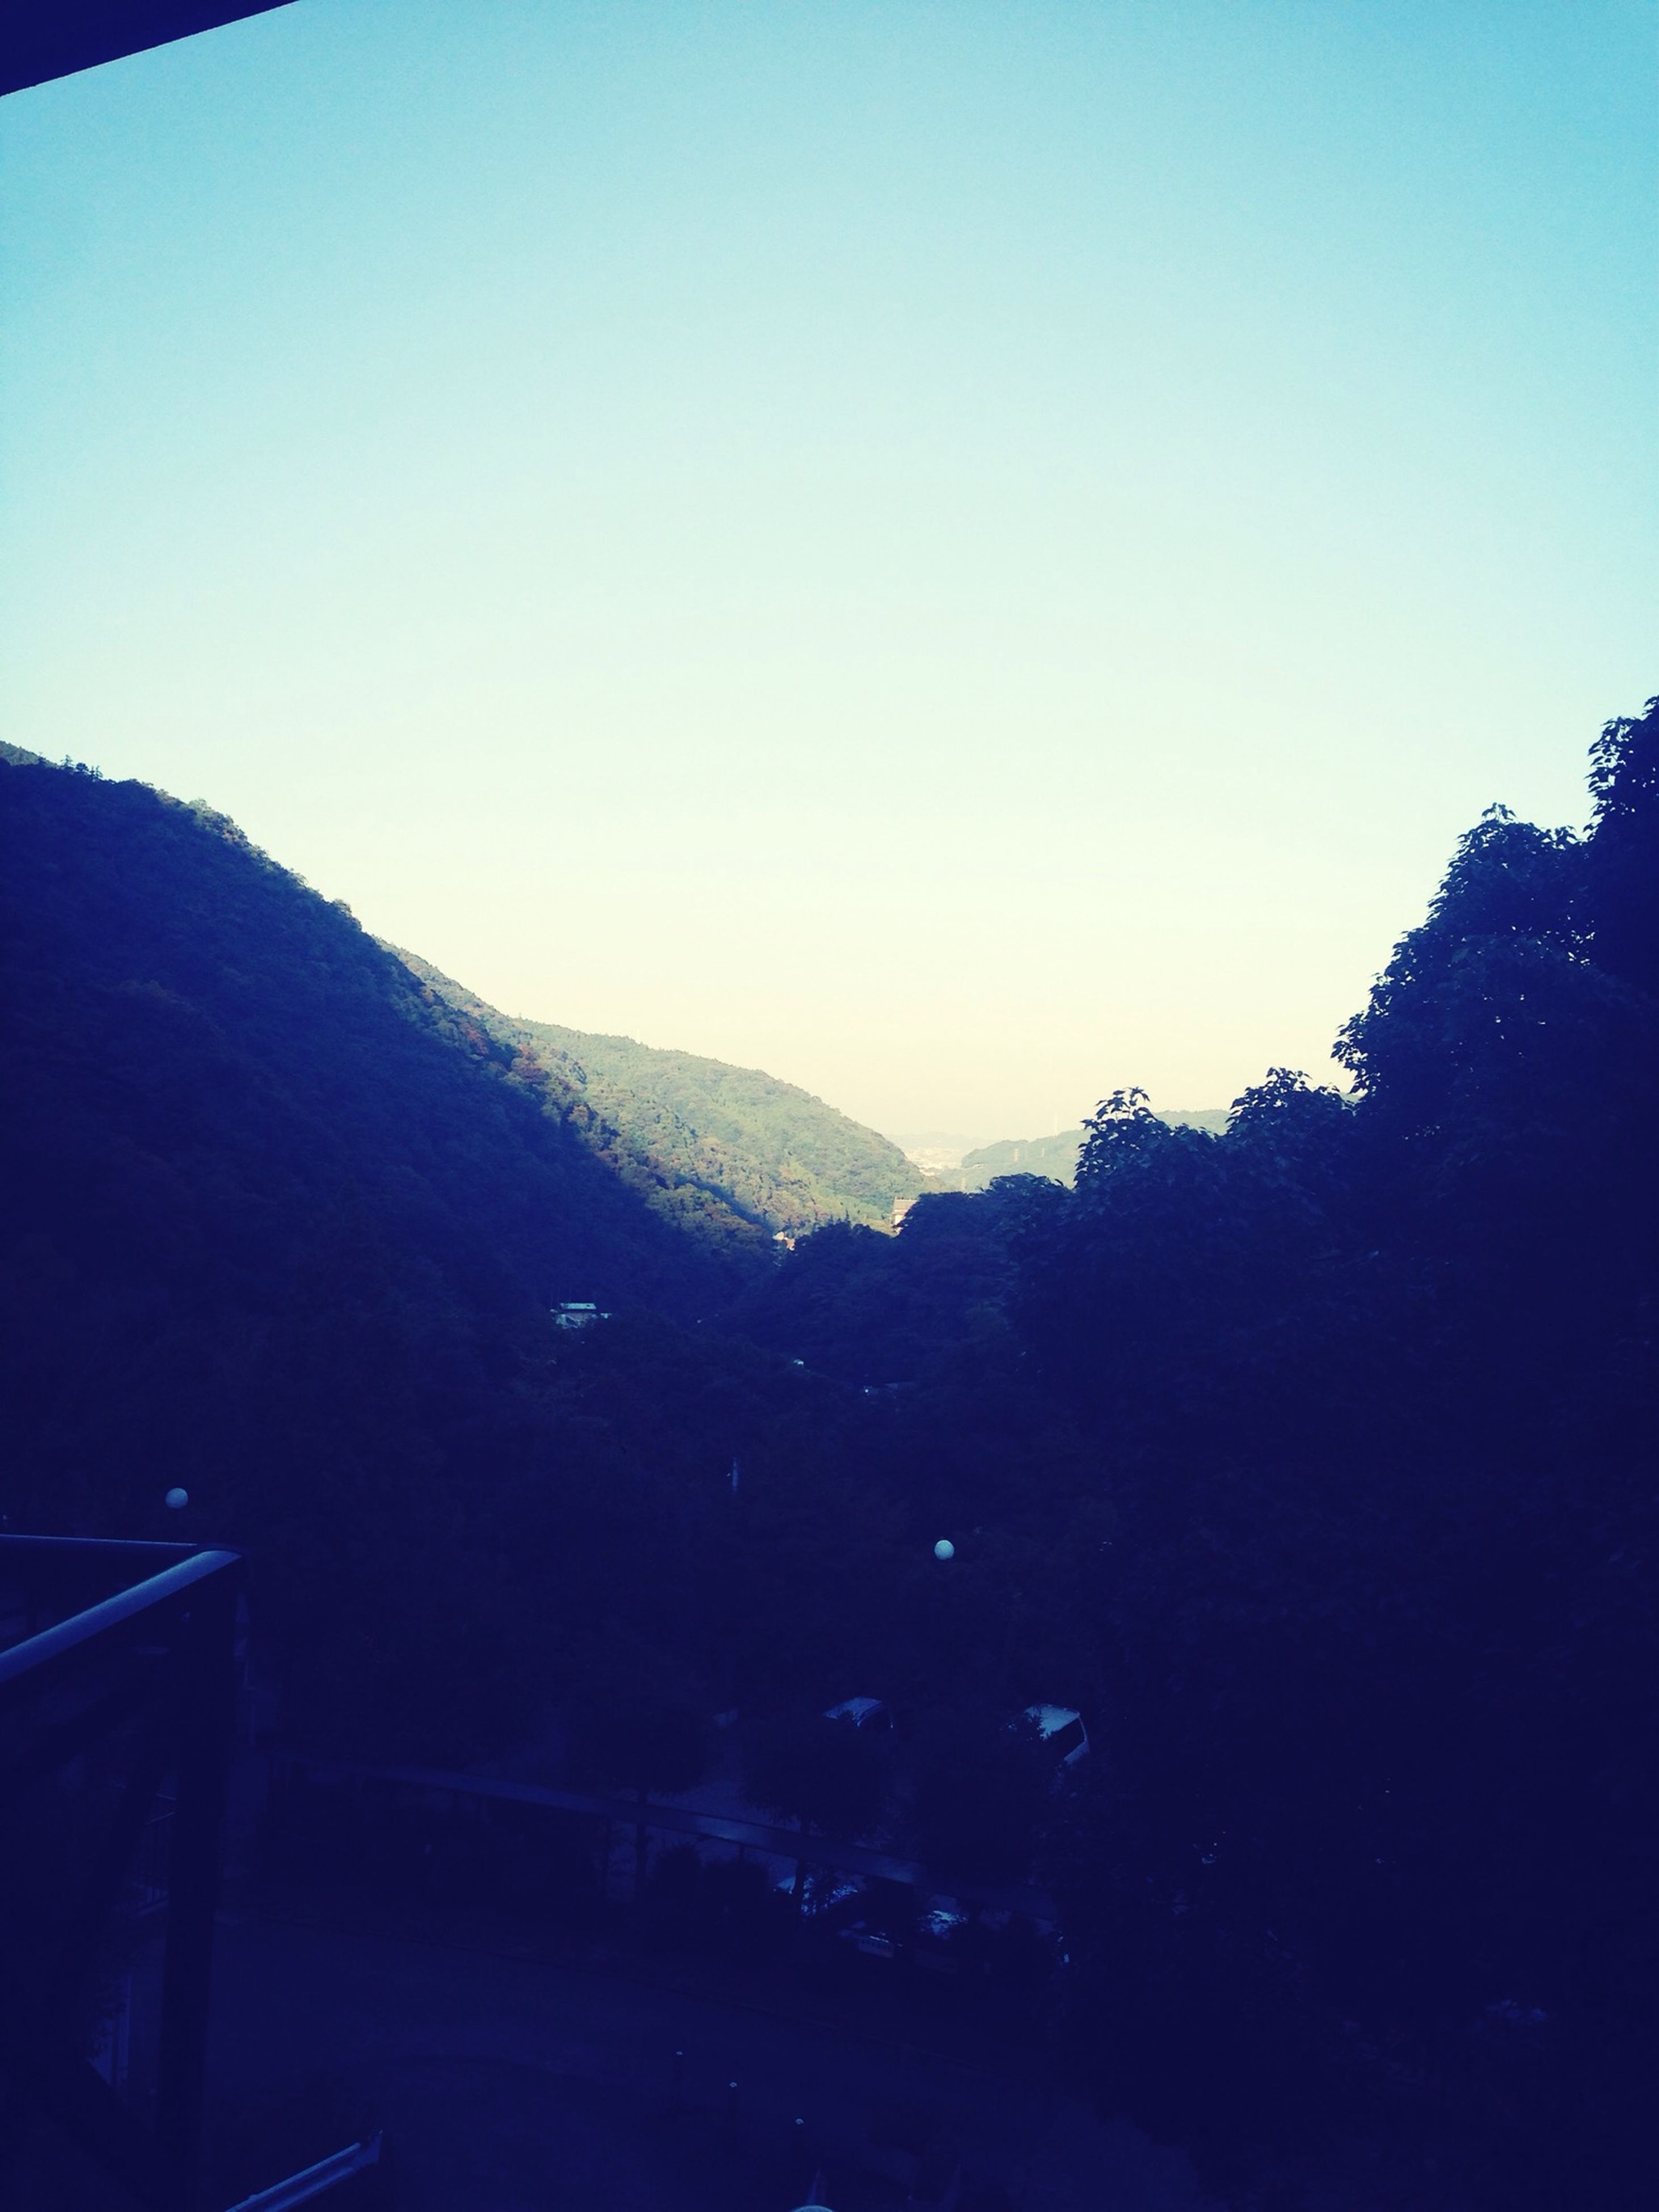 clear sky, mountain, copy space, tranquility, tree, scenics, tranquil scene, beauty in nature, silhouette, blue, mountain range, nature, landscape, dusk, non-urban scene, sky, outdoors, sunset, idyllic, no people